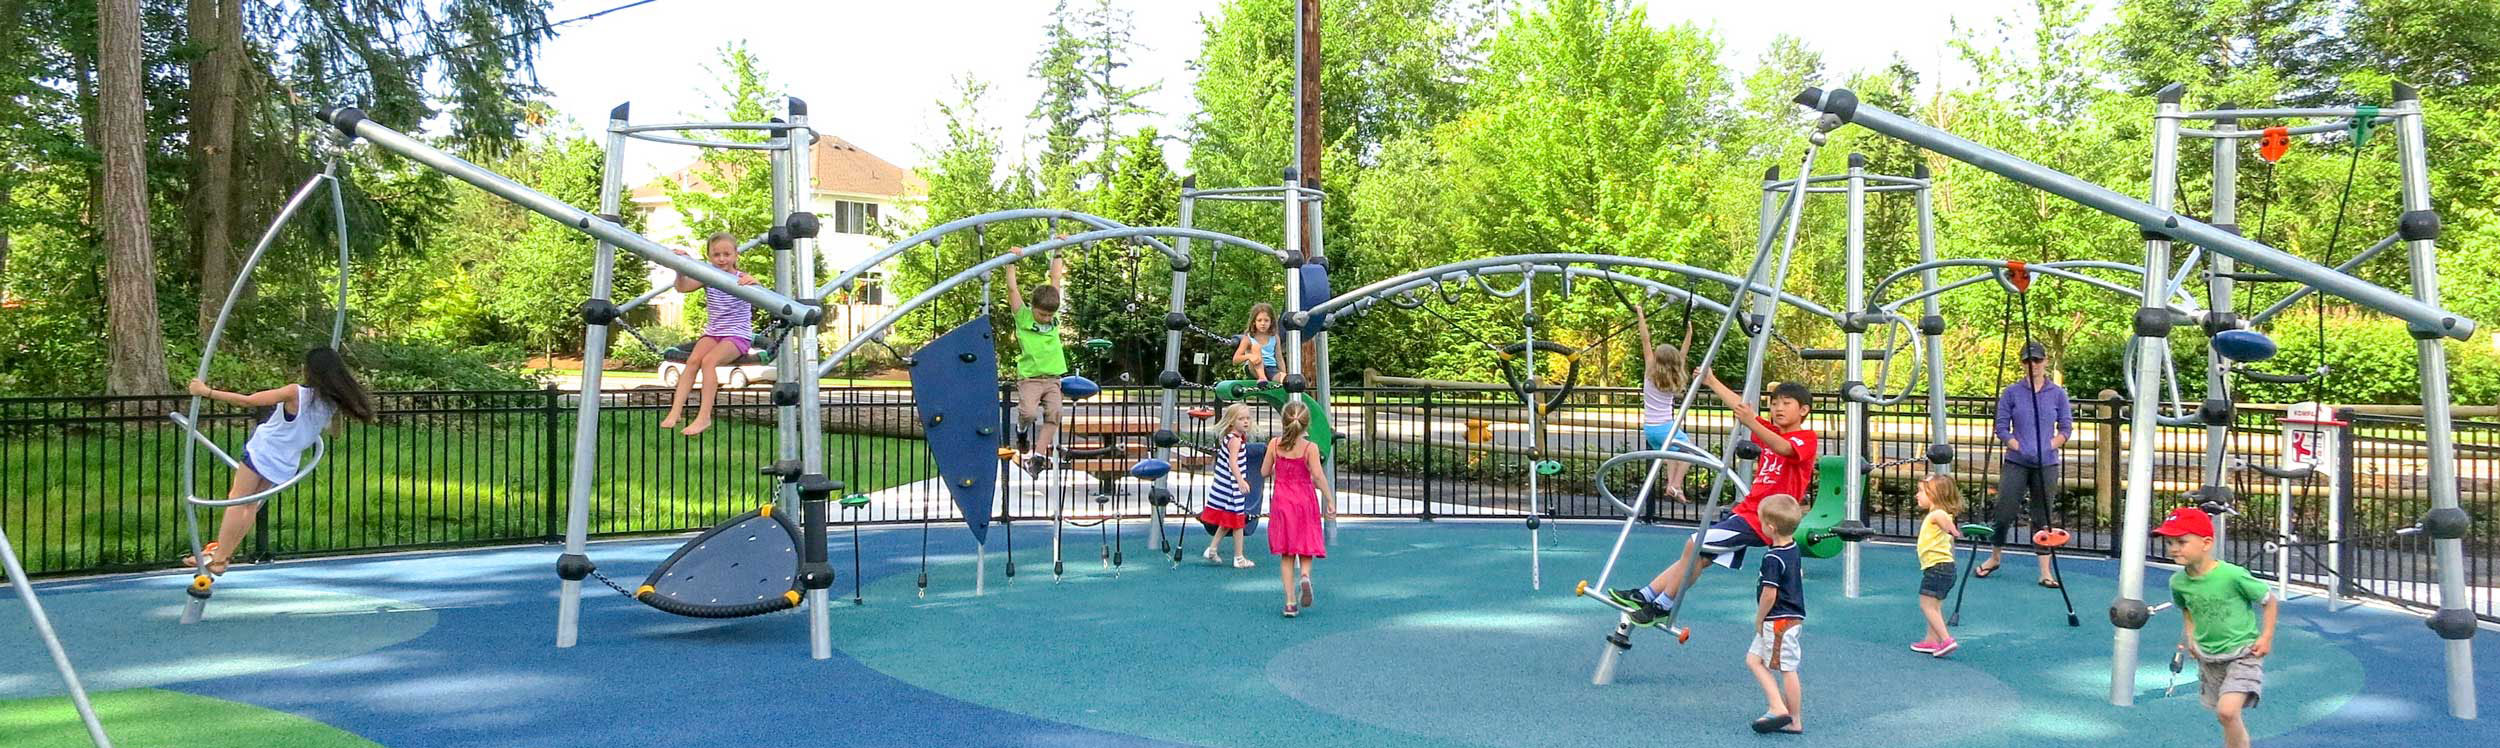 Playground park equipment with rubber safety tiles